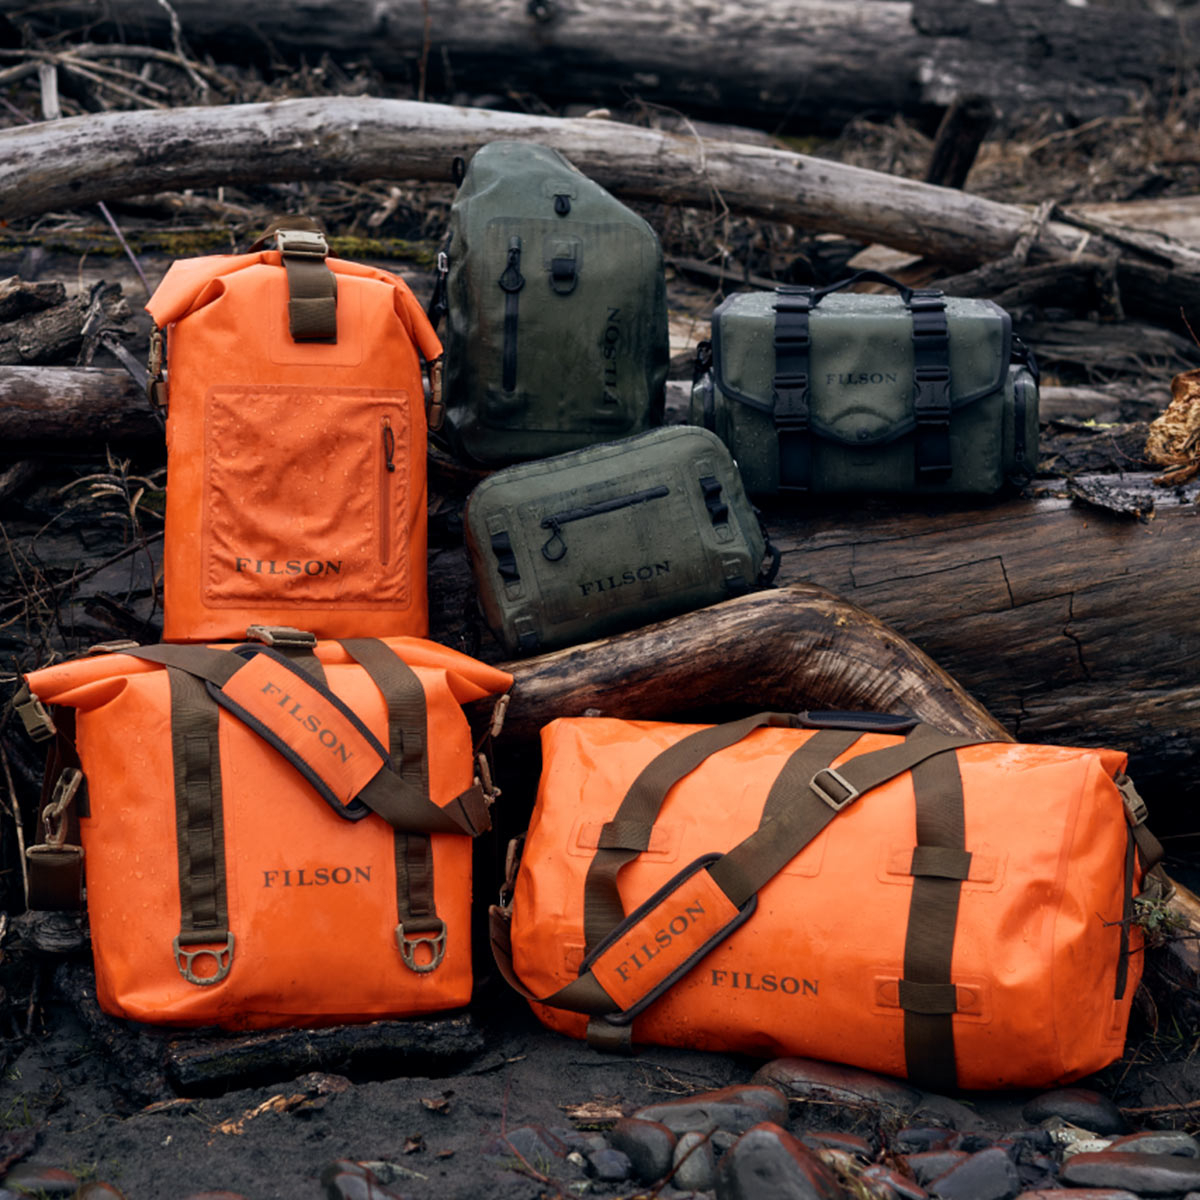 Filson Dry Bags Collection